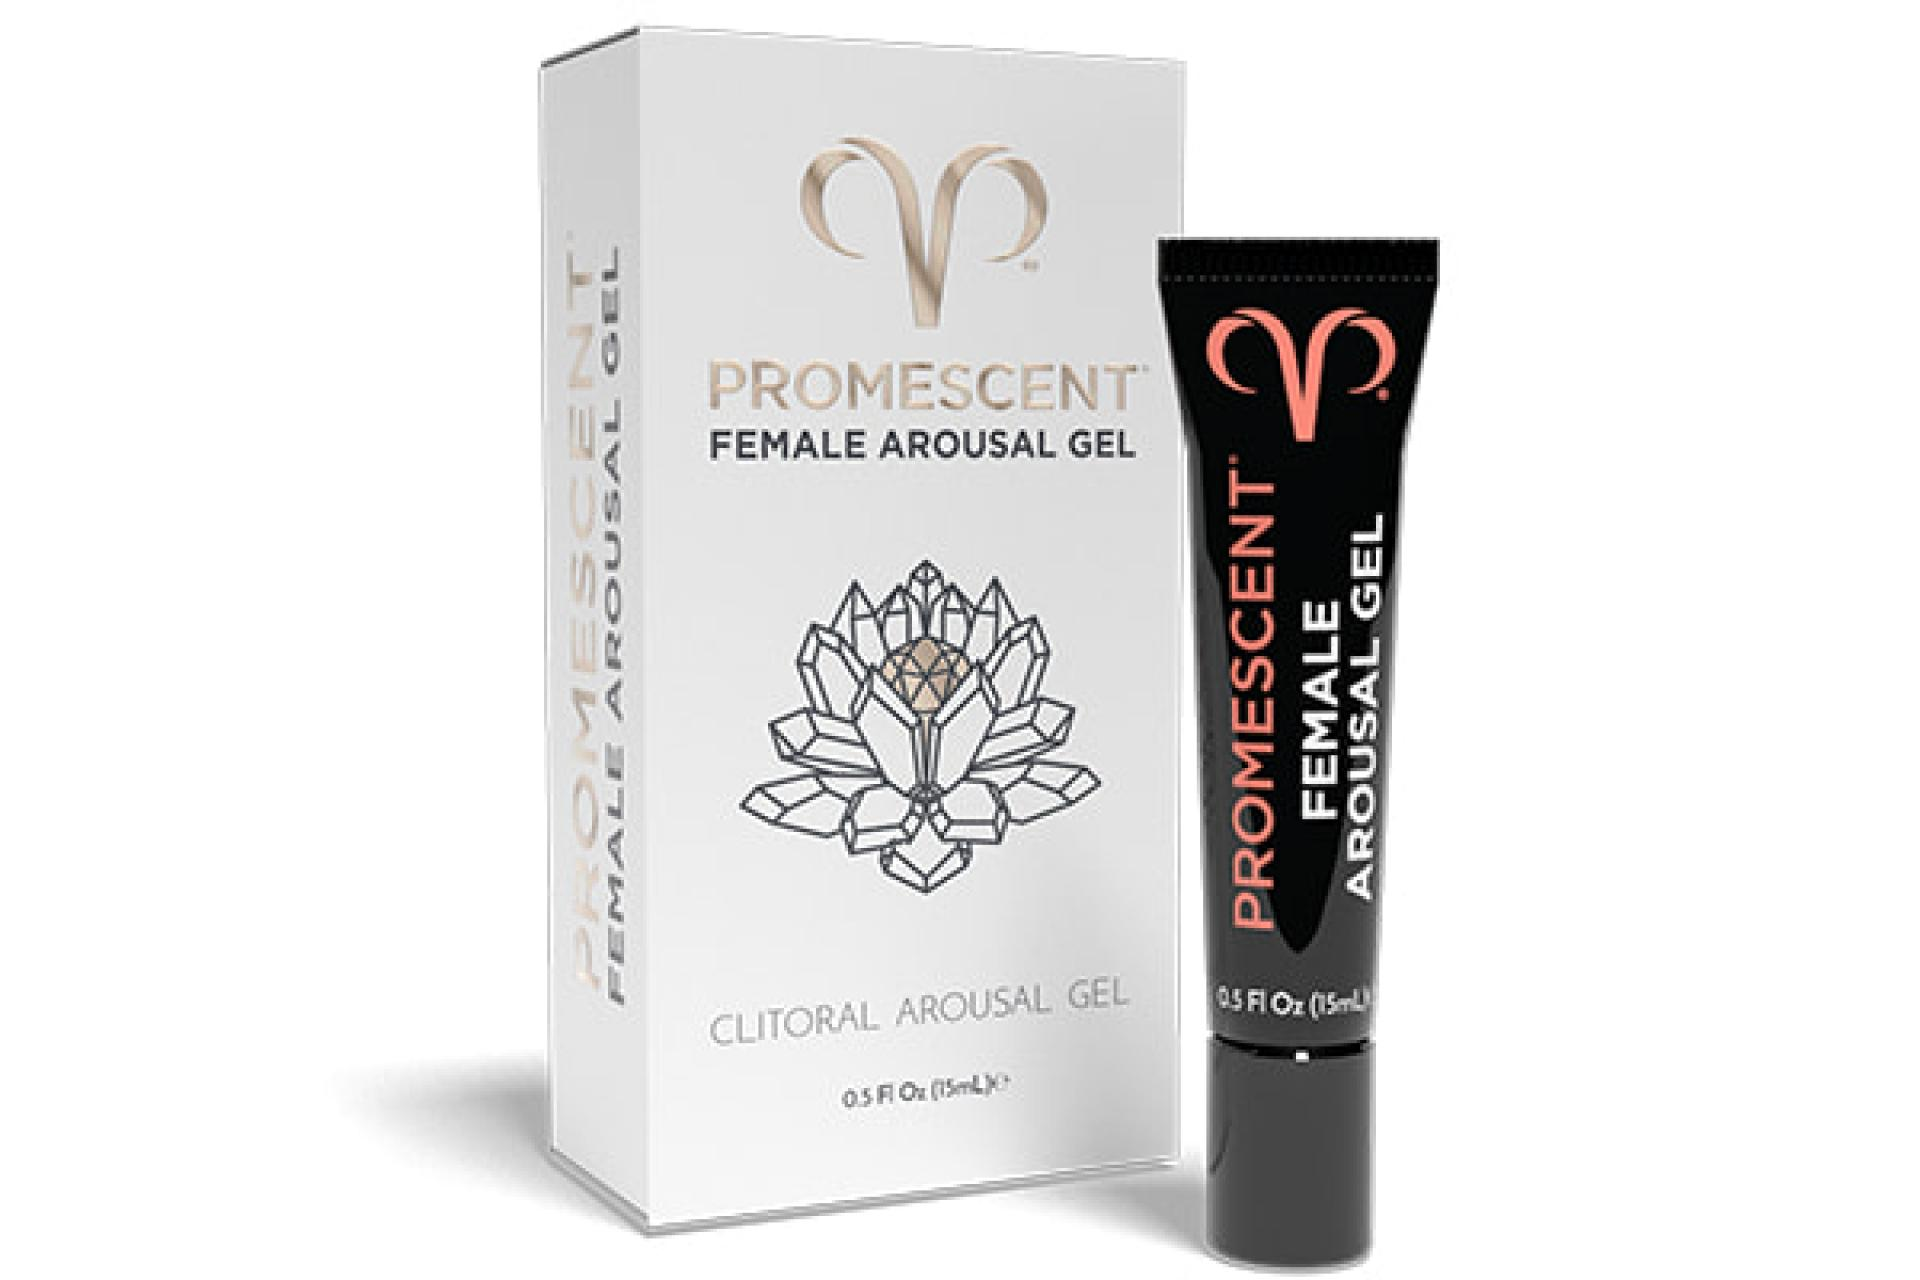 Promescent Female Arousal Gel